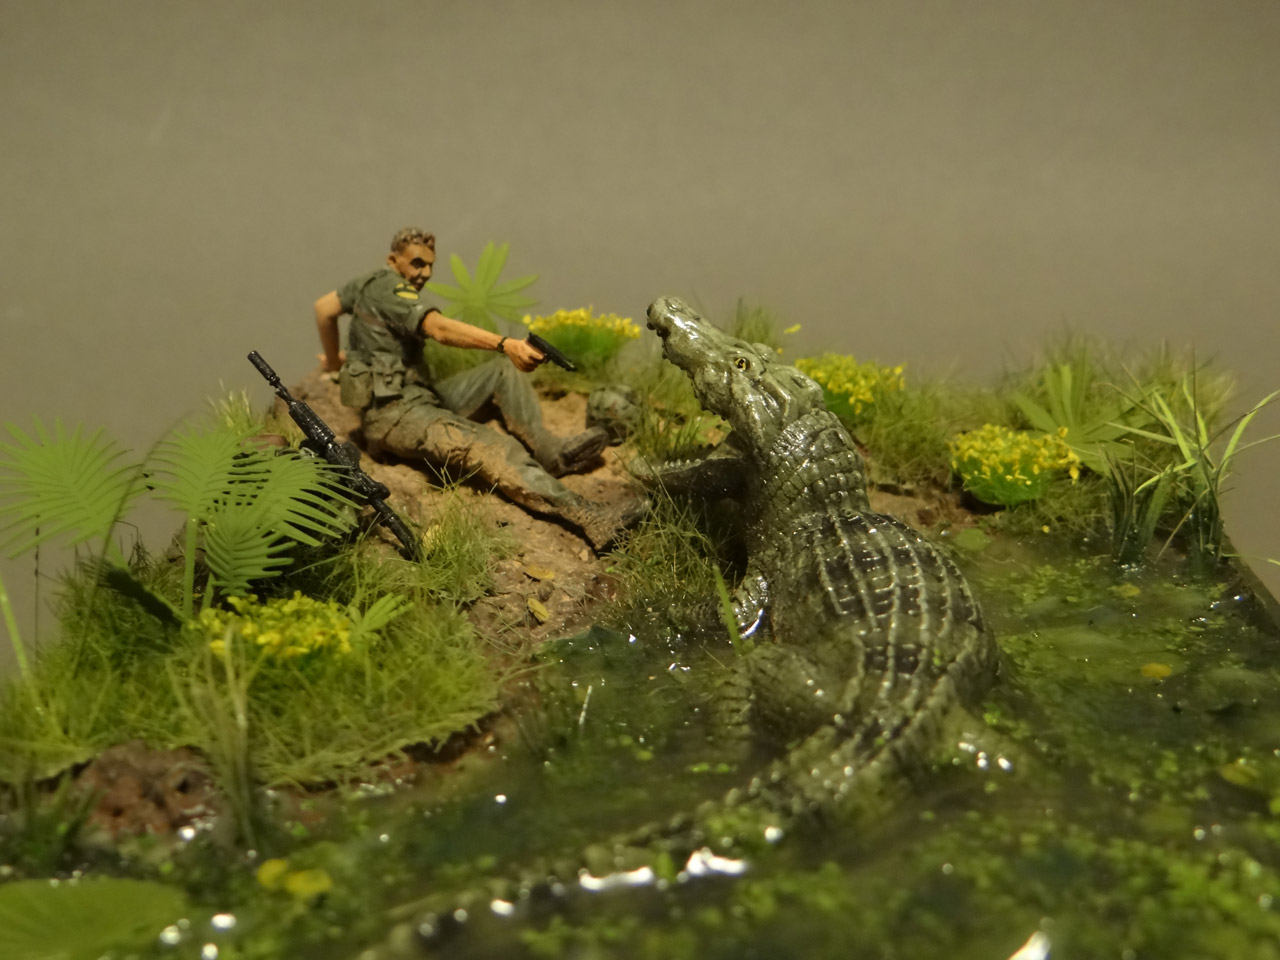 Dioramas and Vignettes: Wild world, photo #2